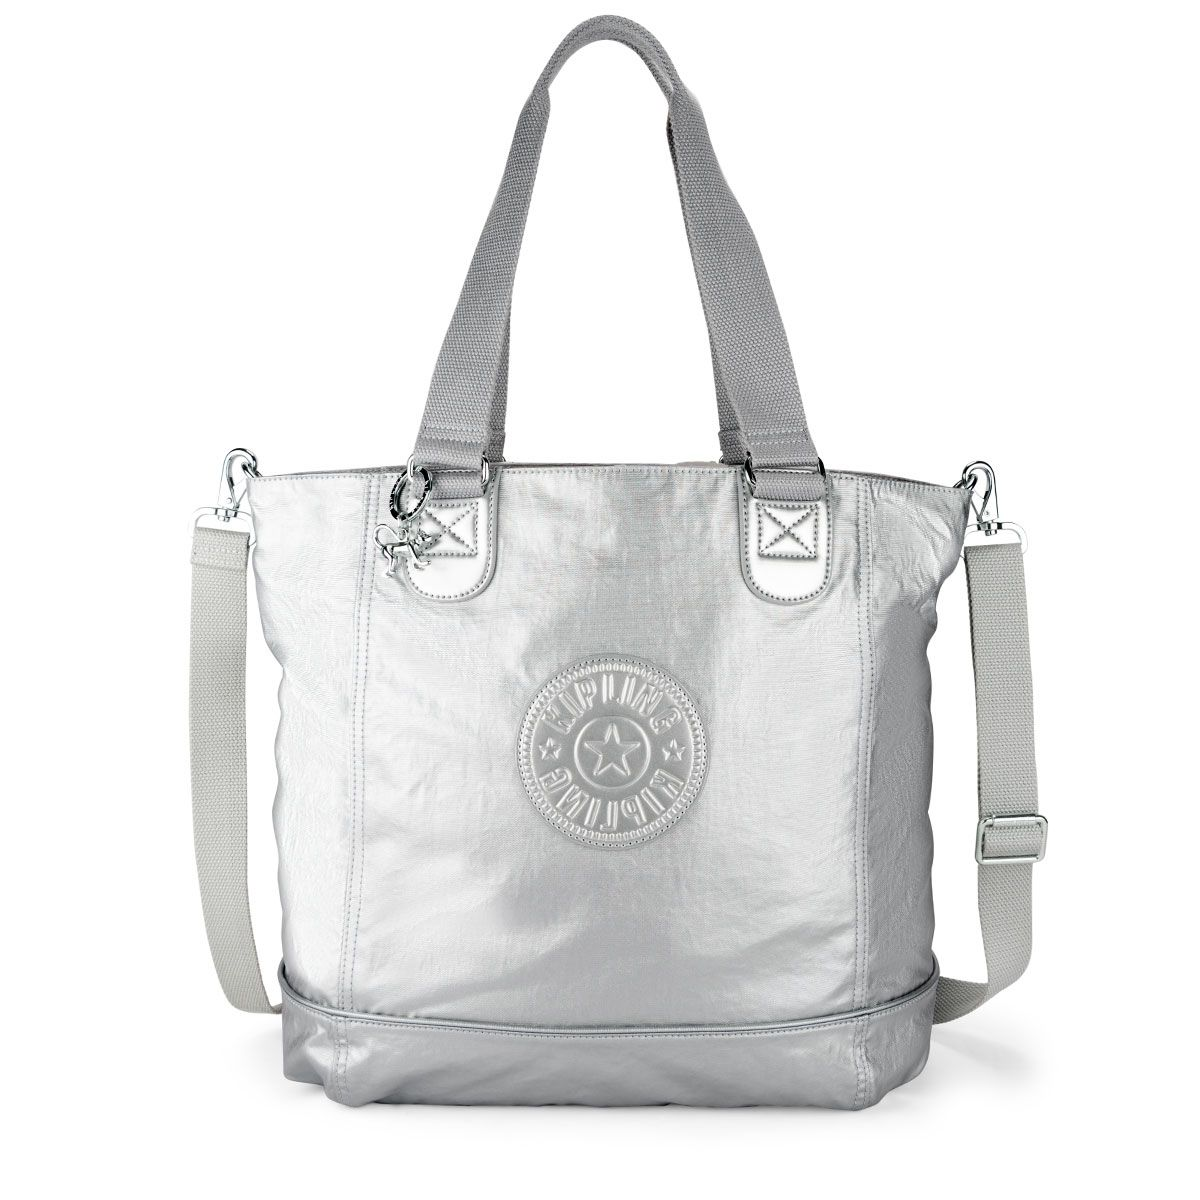 2e6e3a66c095 Kipling Handbags, Purses & Accessories - Macy's